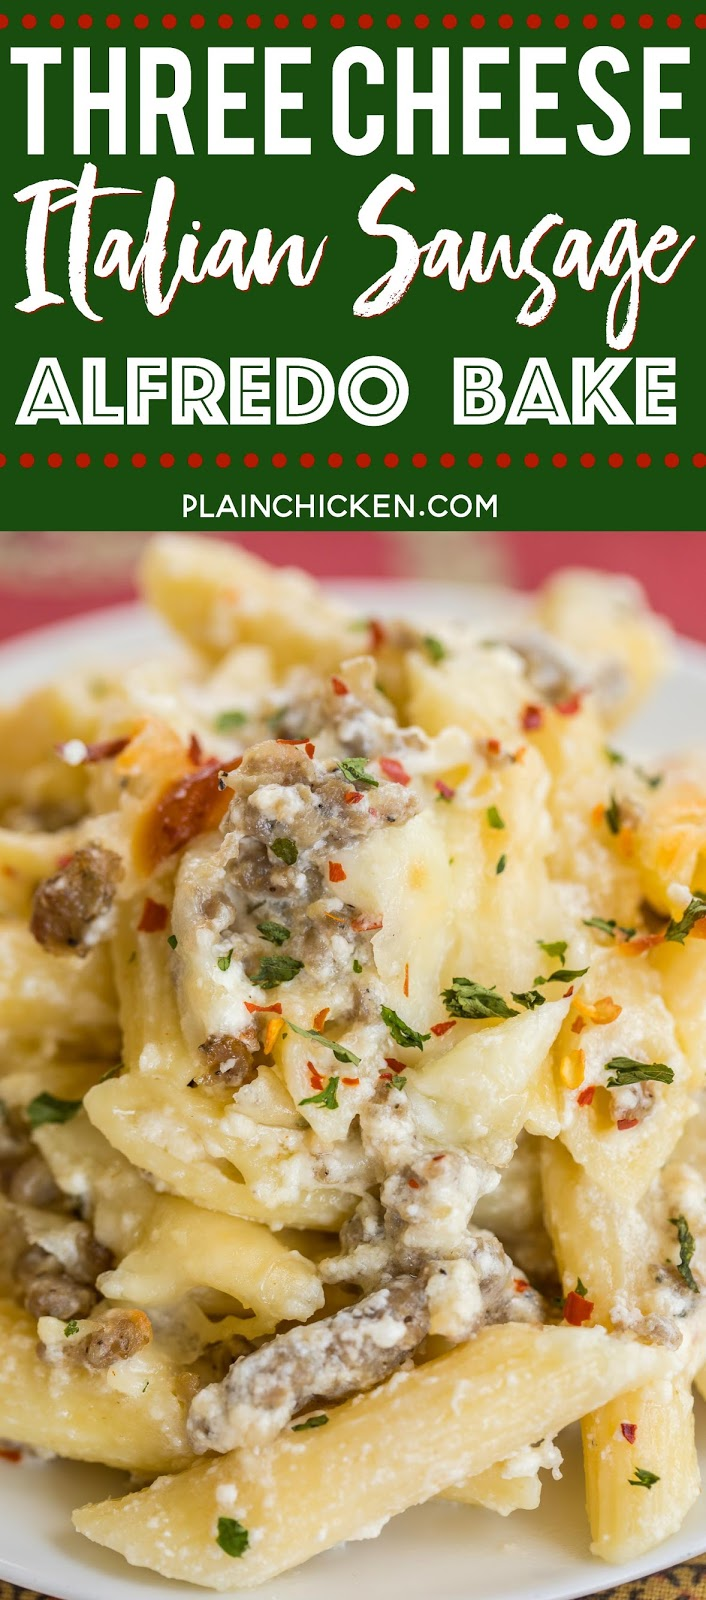 Three Cheese Italian Sausage Alfredo Bake - great make-ahead pasta dish. Elbow macaroni, alfredo sauce, sour cream, ricotta, garlic, italian sausage, eggs, parmesan and mozzarella cheese. SO good!! We make this at least once a month! Can freeze half for later. This is THE BEST pasta casserole we've ever eaten!!! #casserole #freezermeal #pasta #pastacasserole